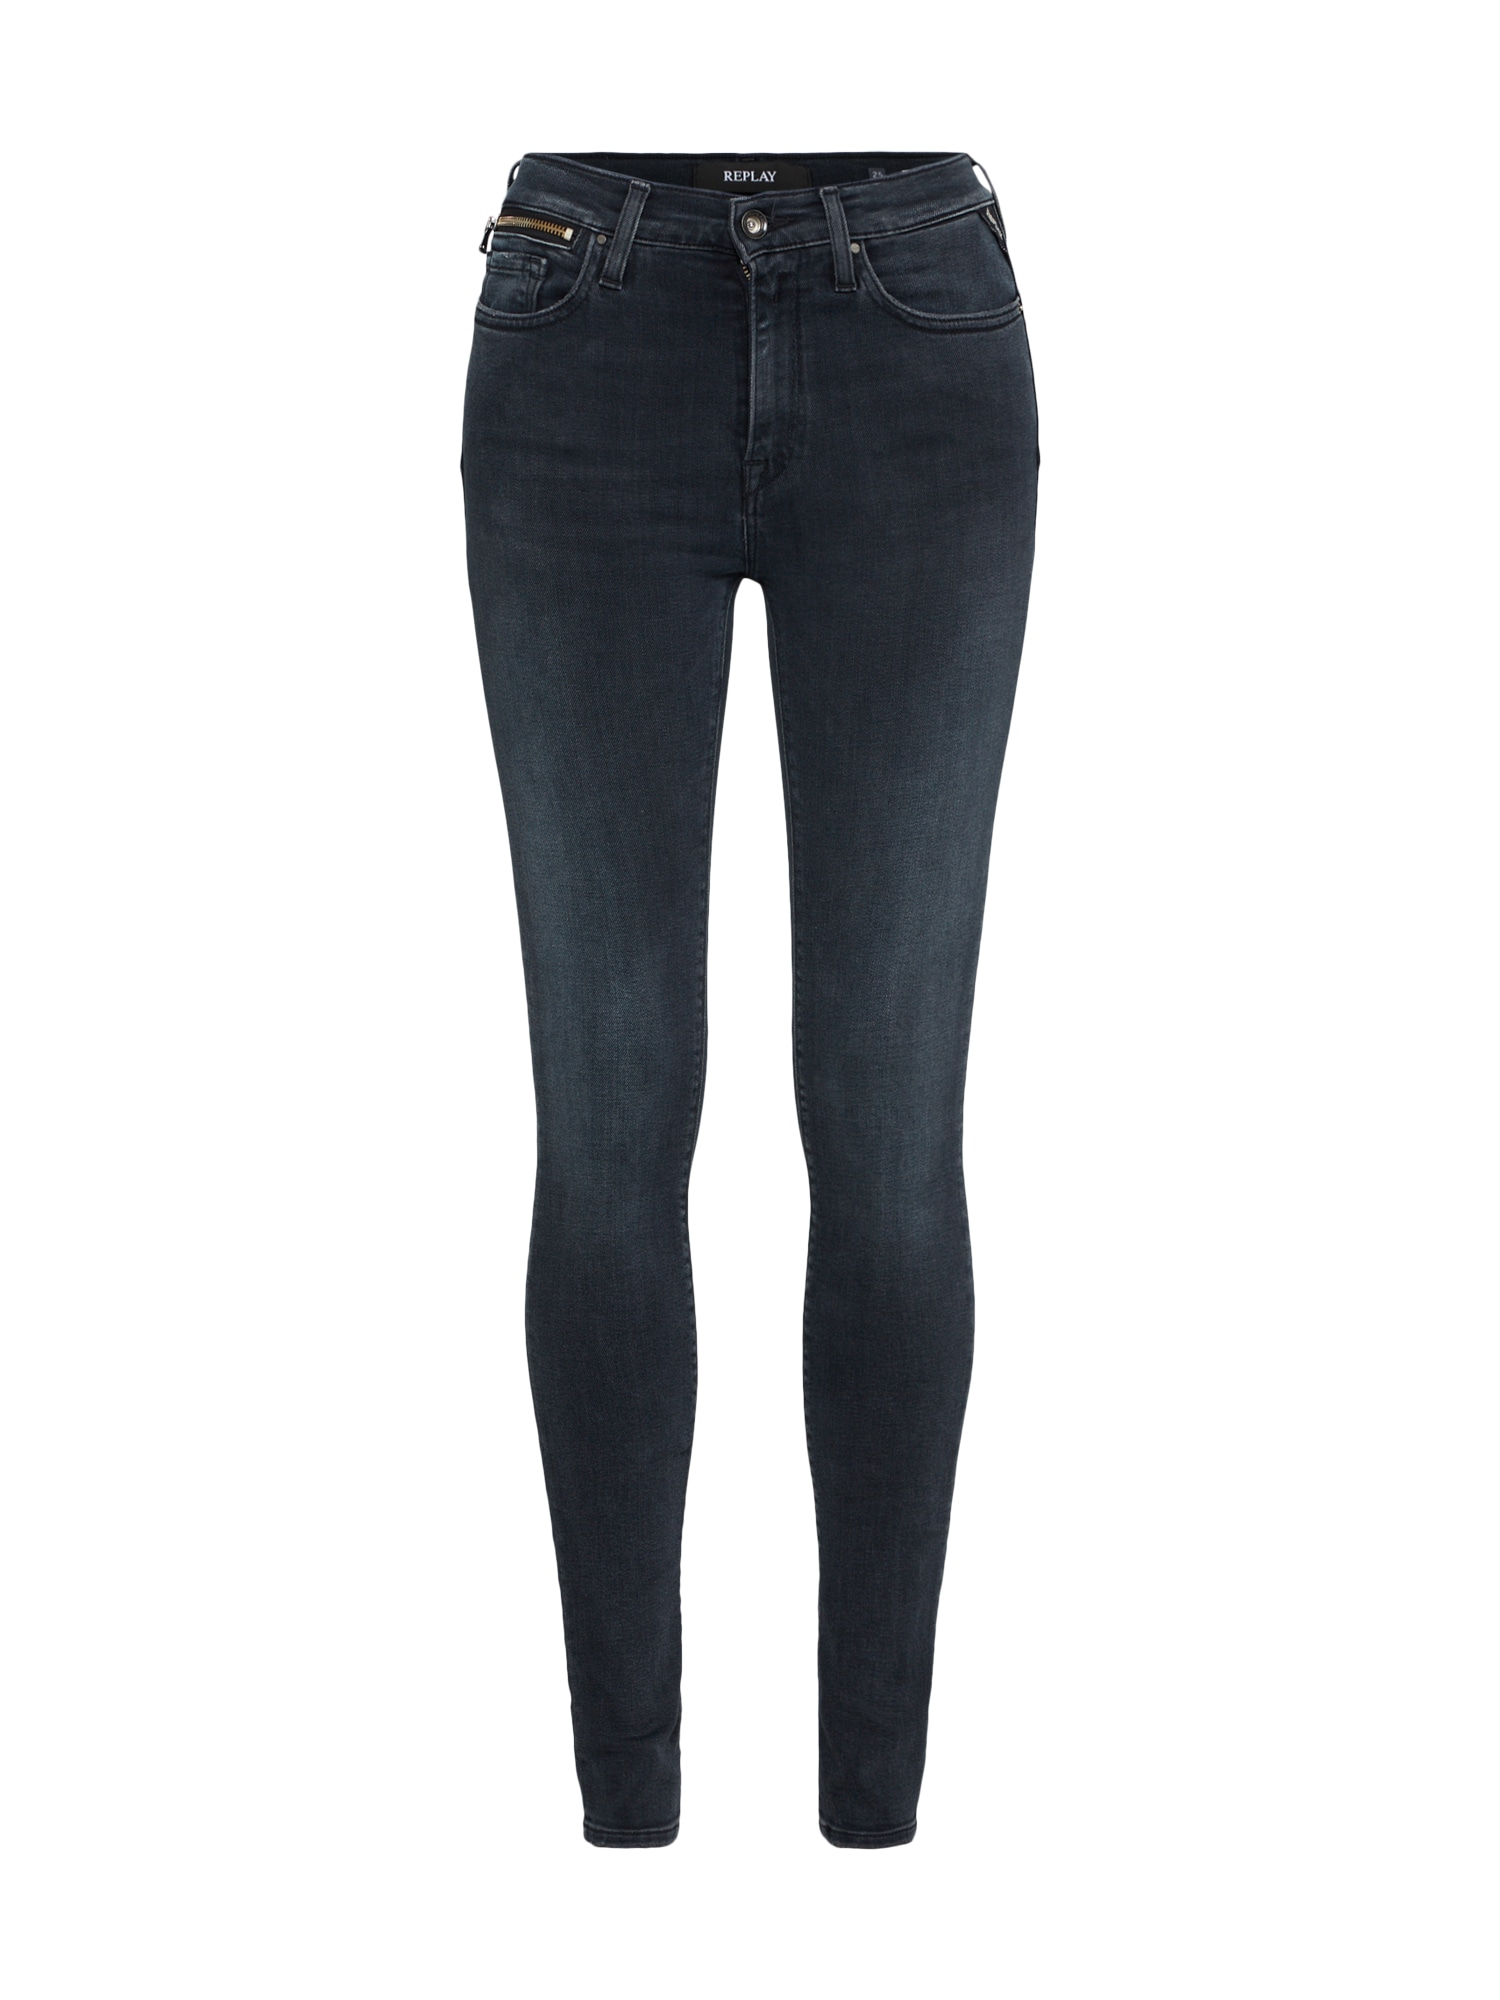 REPLAY Dames Jeans ZACKIE donkergrijs